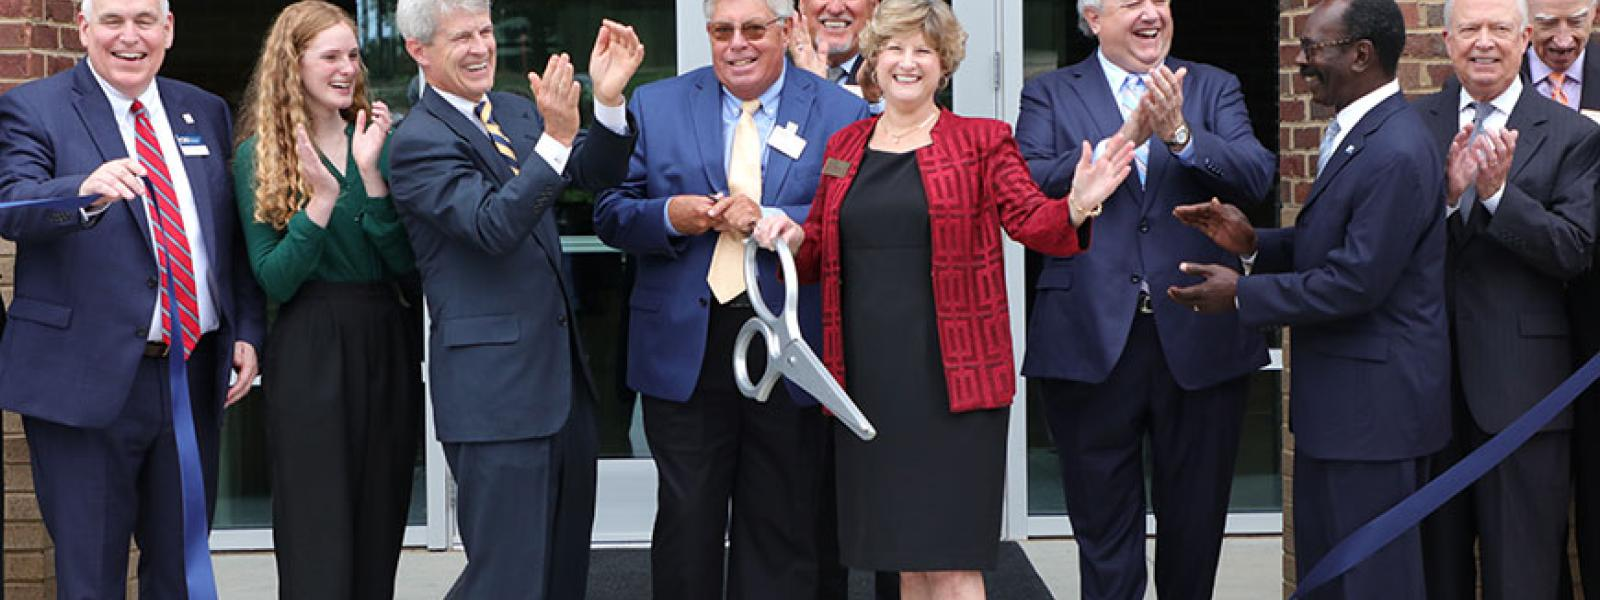 Lyn Cook cuts the ribbon on the John and Lyn Cook School of Business located in the Jones Center. (Photos by Kierston Smith)